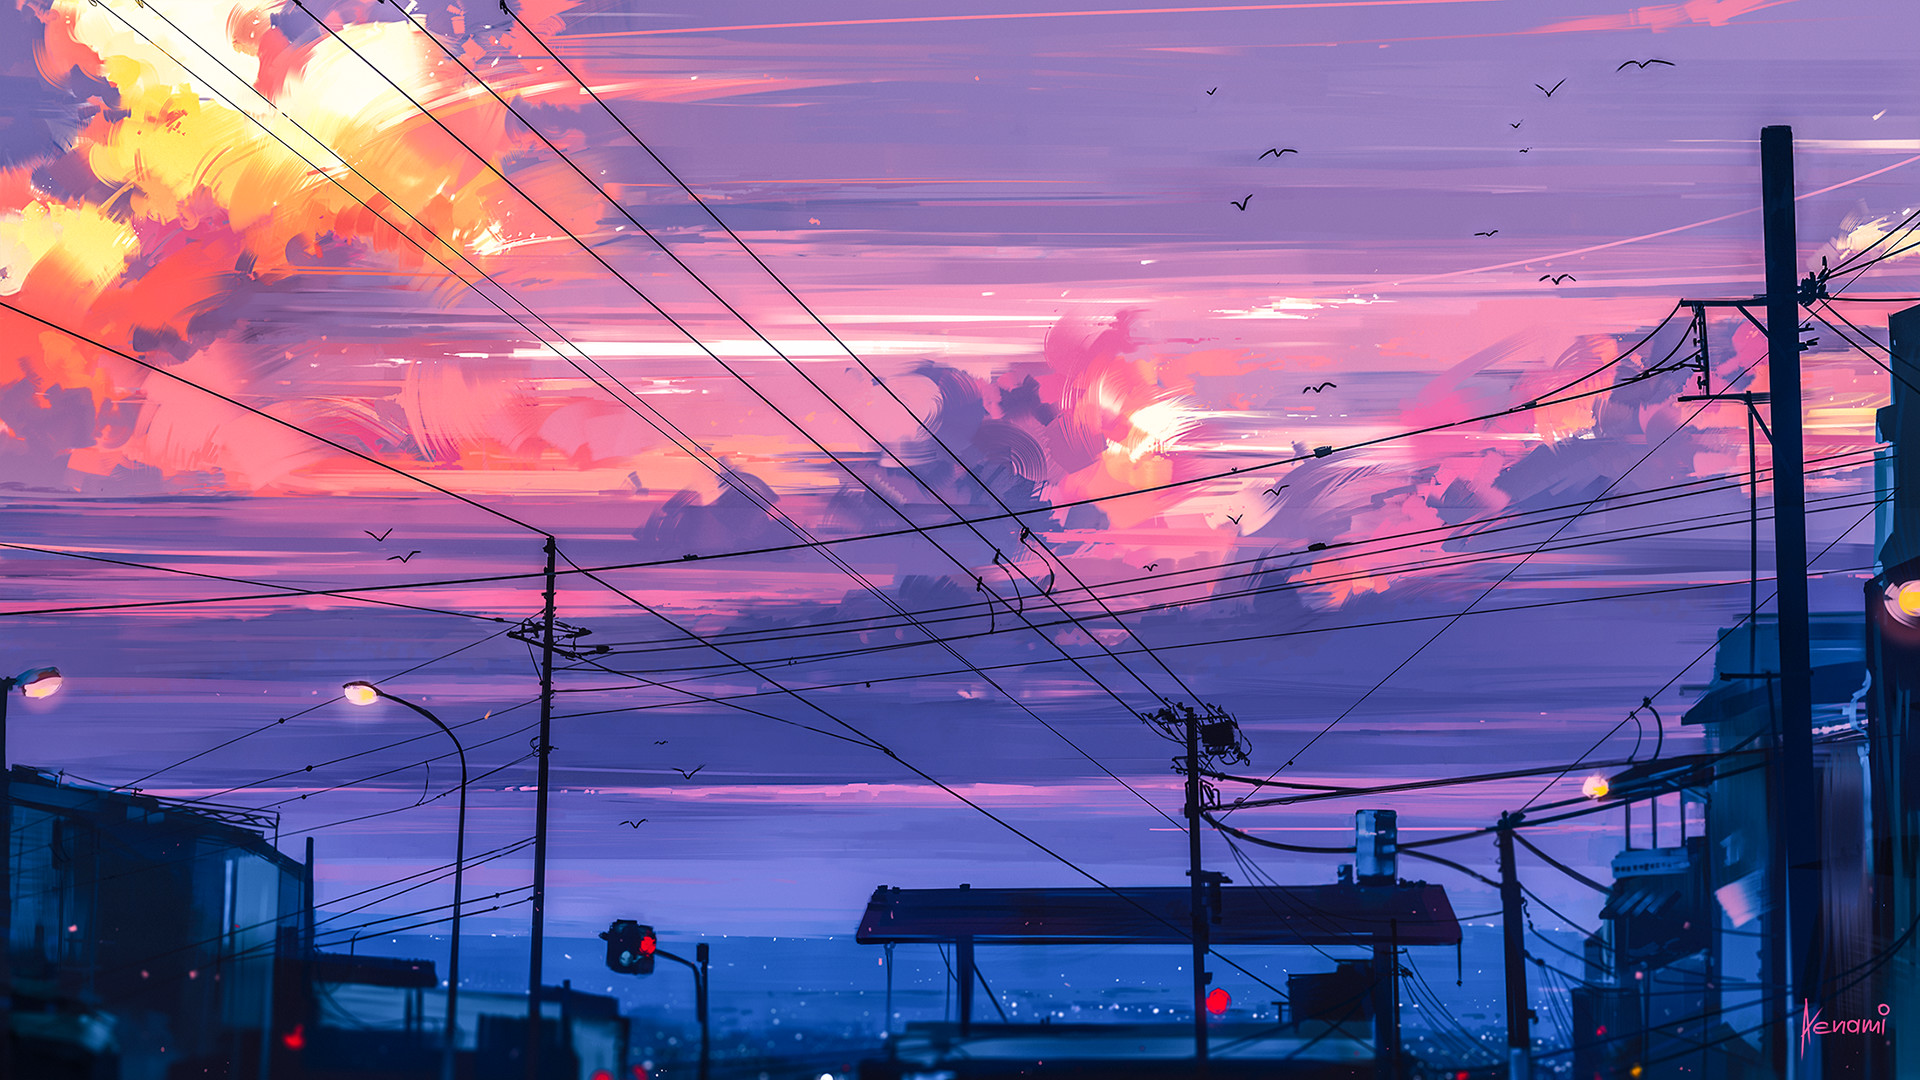 General 1920x1080 digital art illustration sunset city clouds artwork lines town painting street drawing Aenami